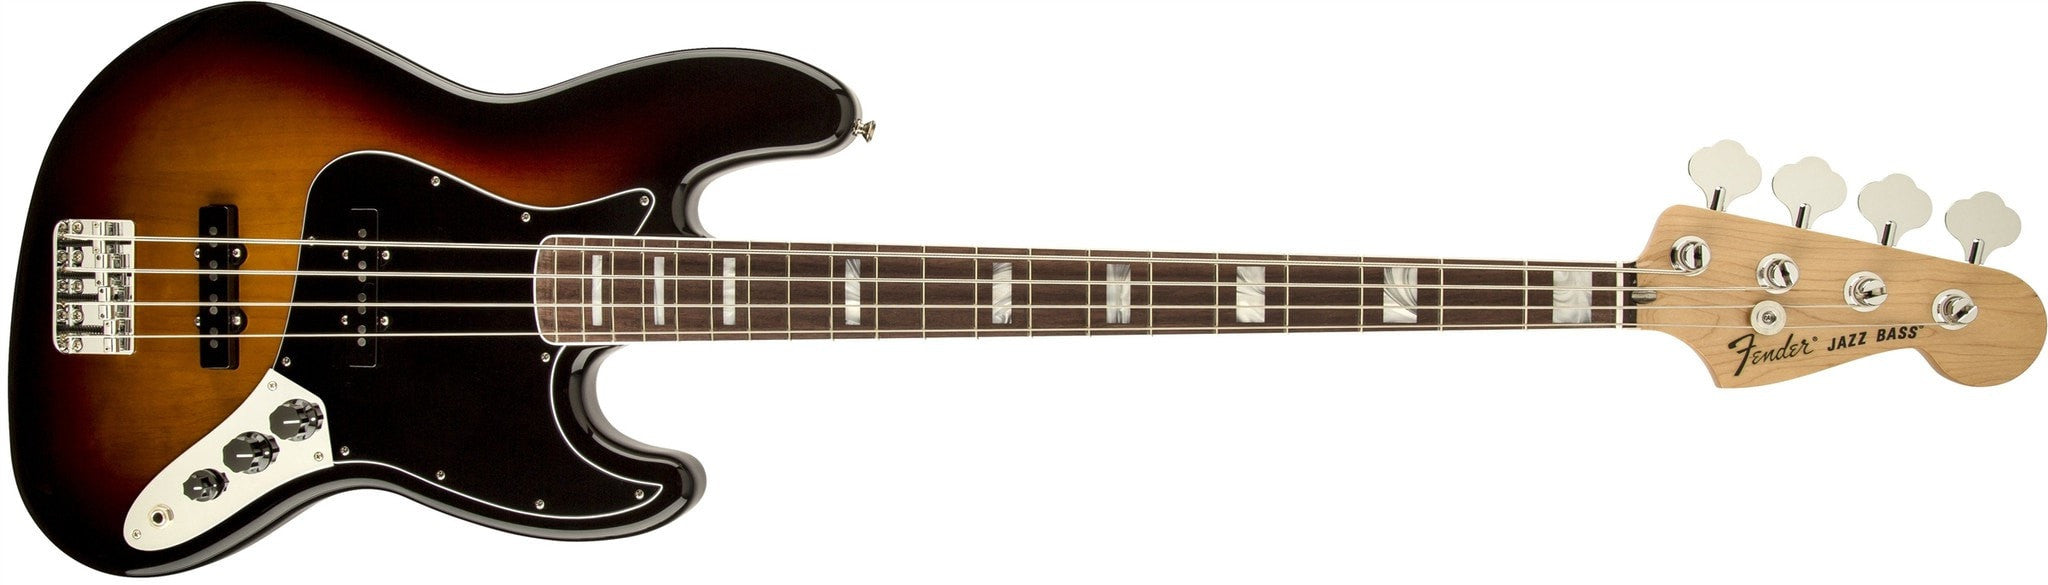 Fender Classic '70s Jazz Bass - Somerset Music